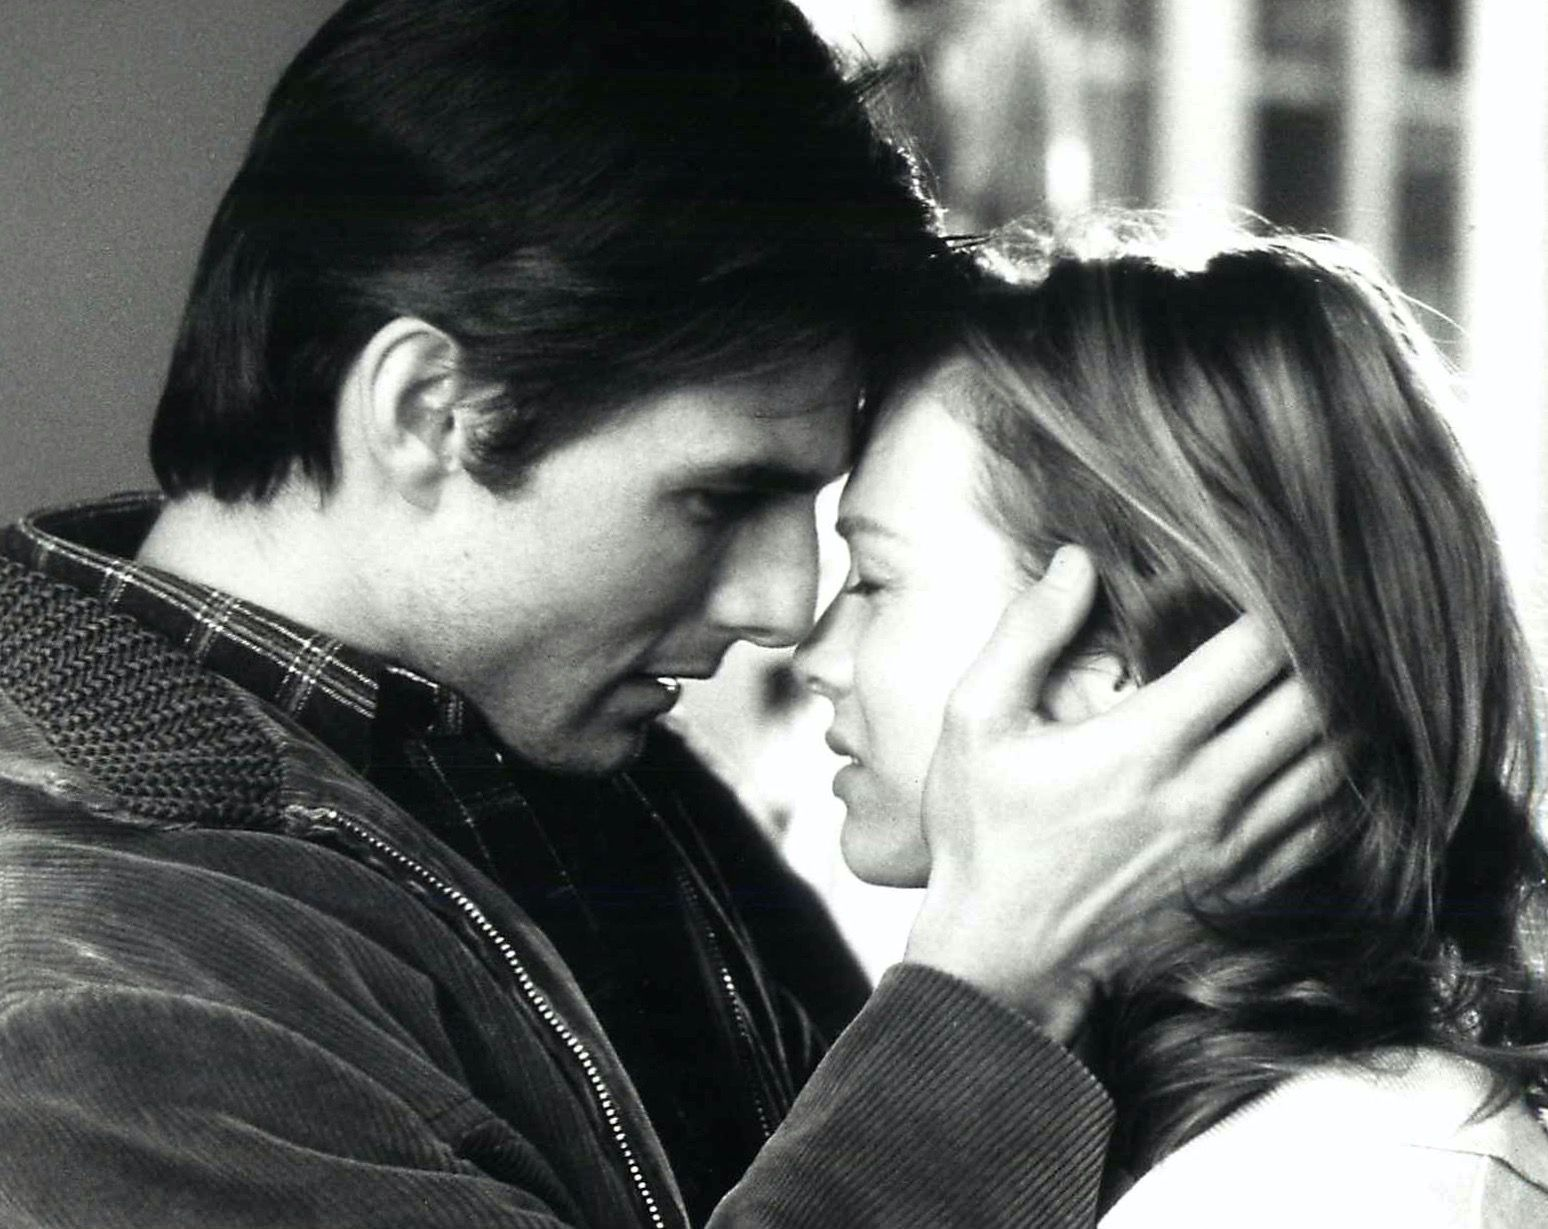 Tom Cruise and Renée Zellweger in the movie, 'Jerry Maguire'